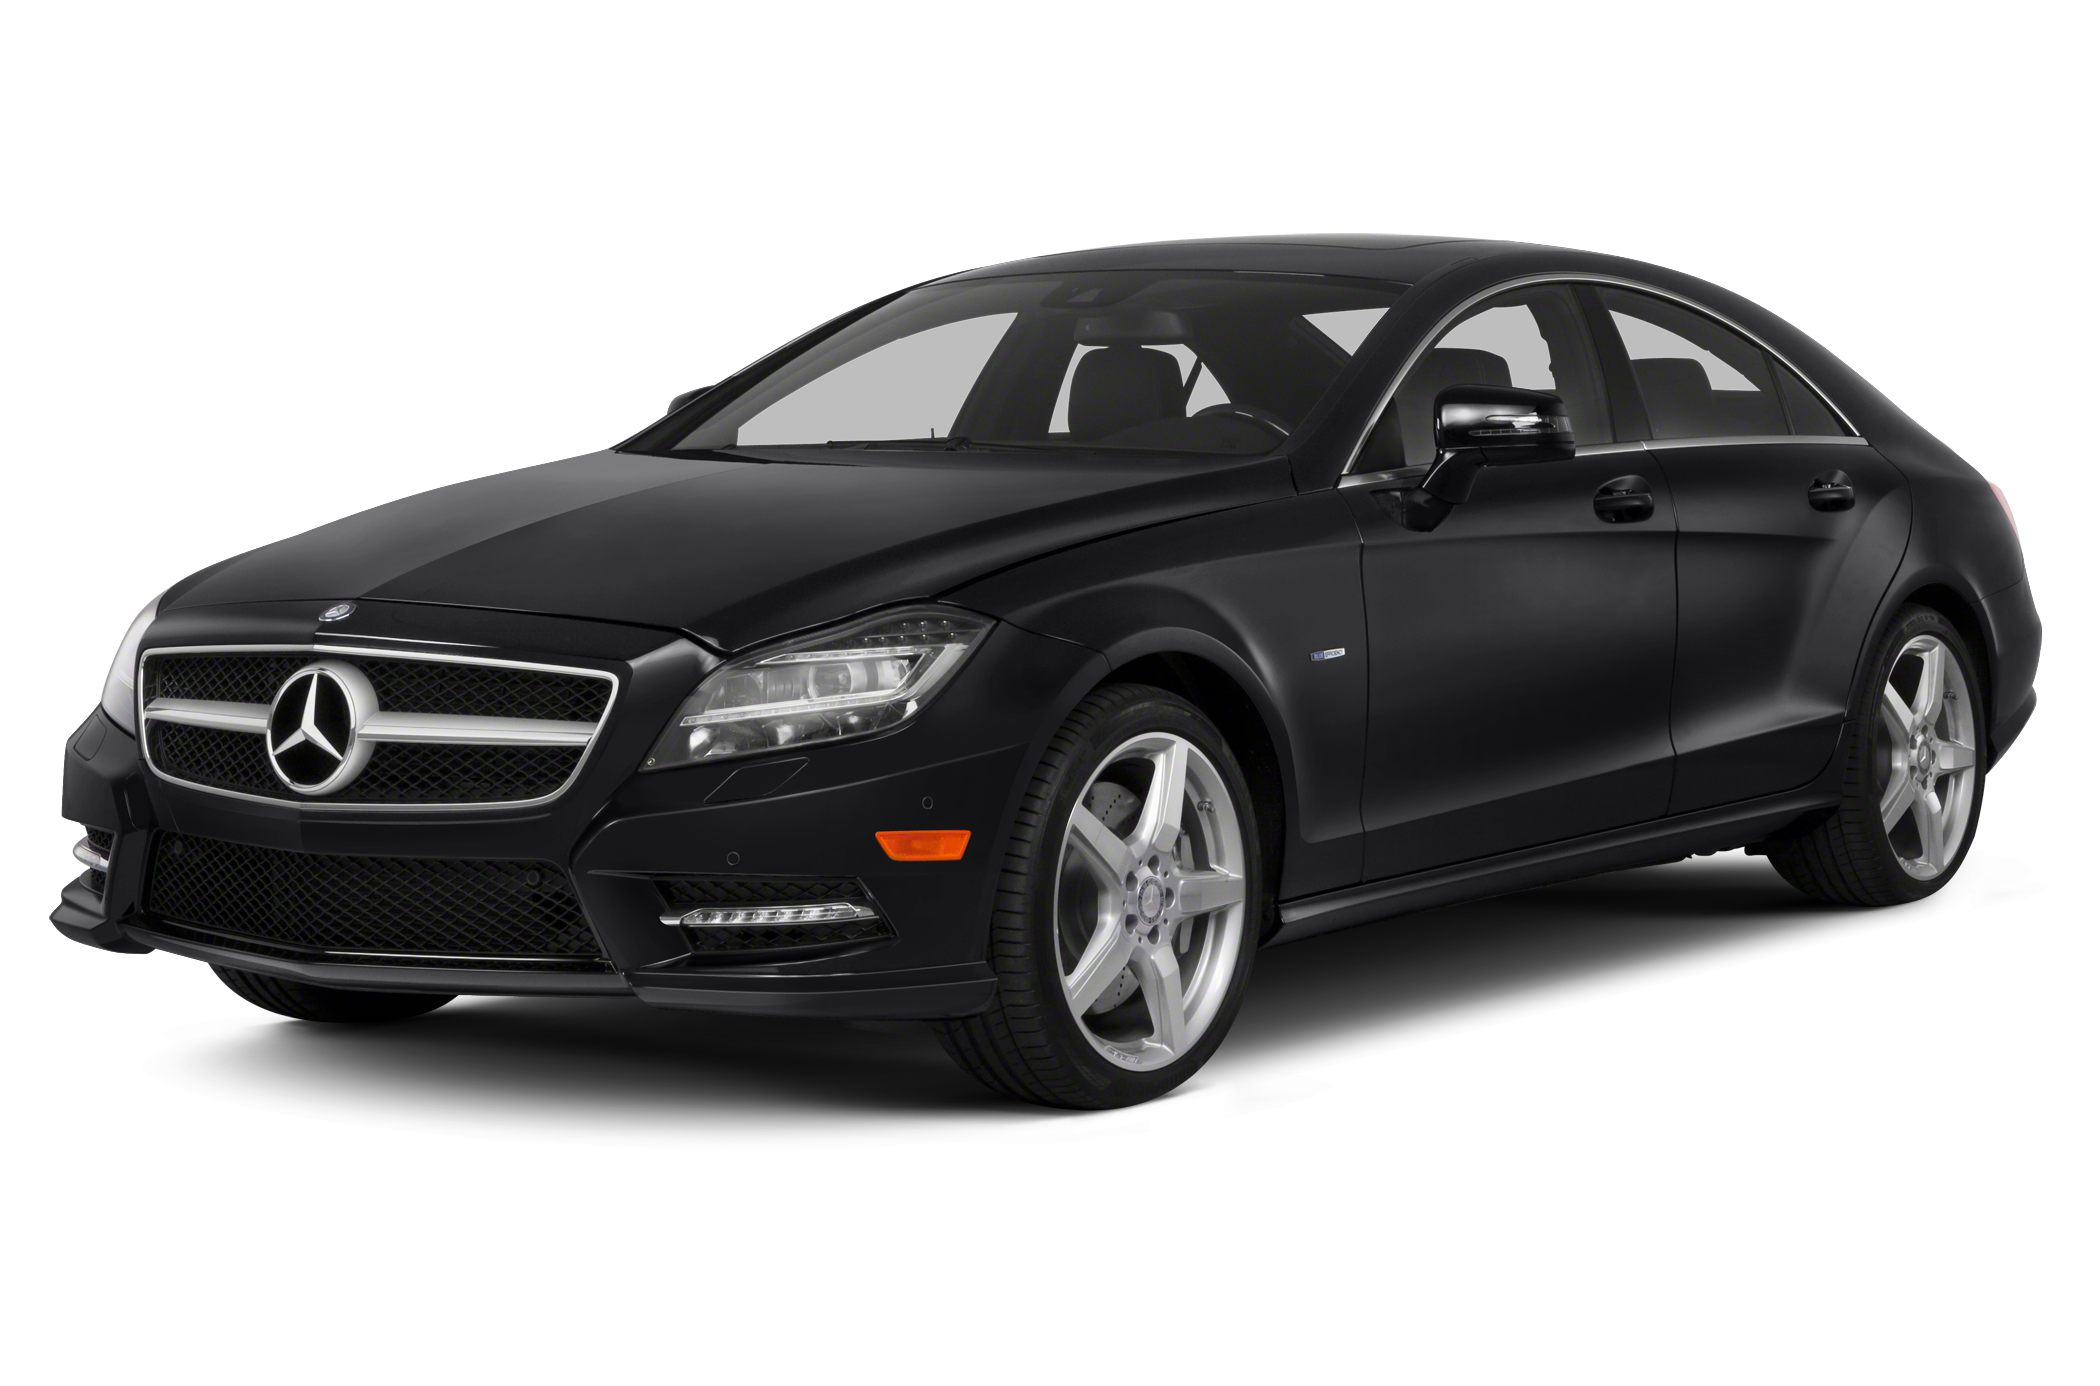 2012 Mercedes-Benz CLS-Class CLS550 4MATIC Coupe for sale in Louisville for $53,991 with 29,368 miles.